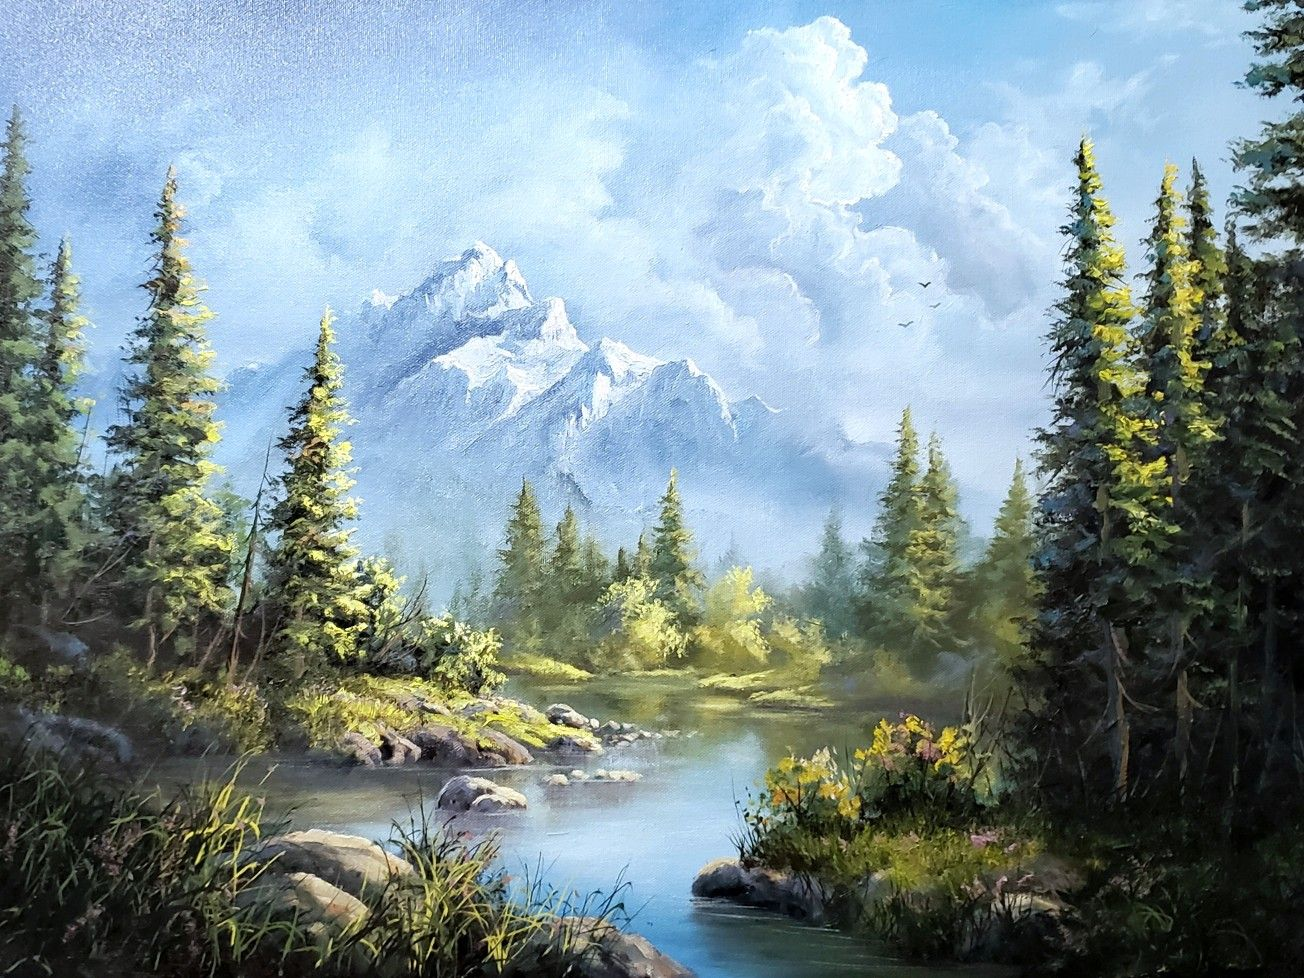 This Week I Painted A Classic Landscape With A Distant Mountain Evergreen Trees And Foreground Lake I Hope You Enj In 2020 Kevin Hill Paintings Landscape Kevin Hill